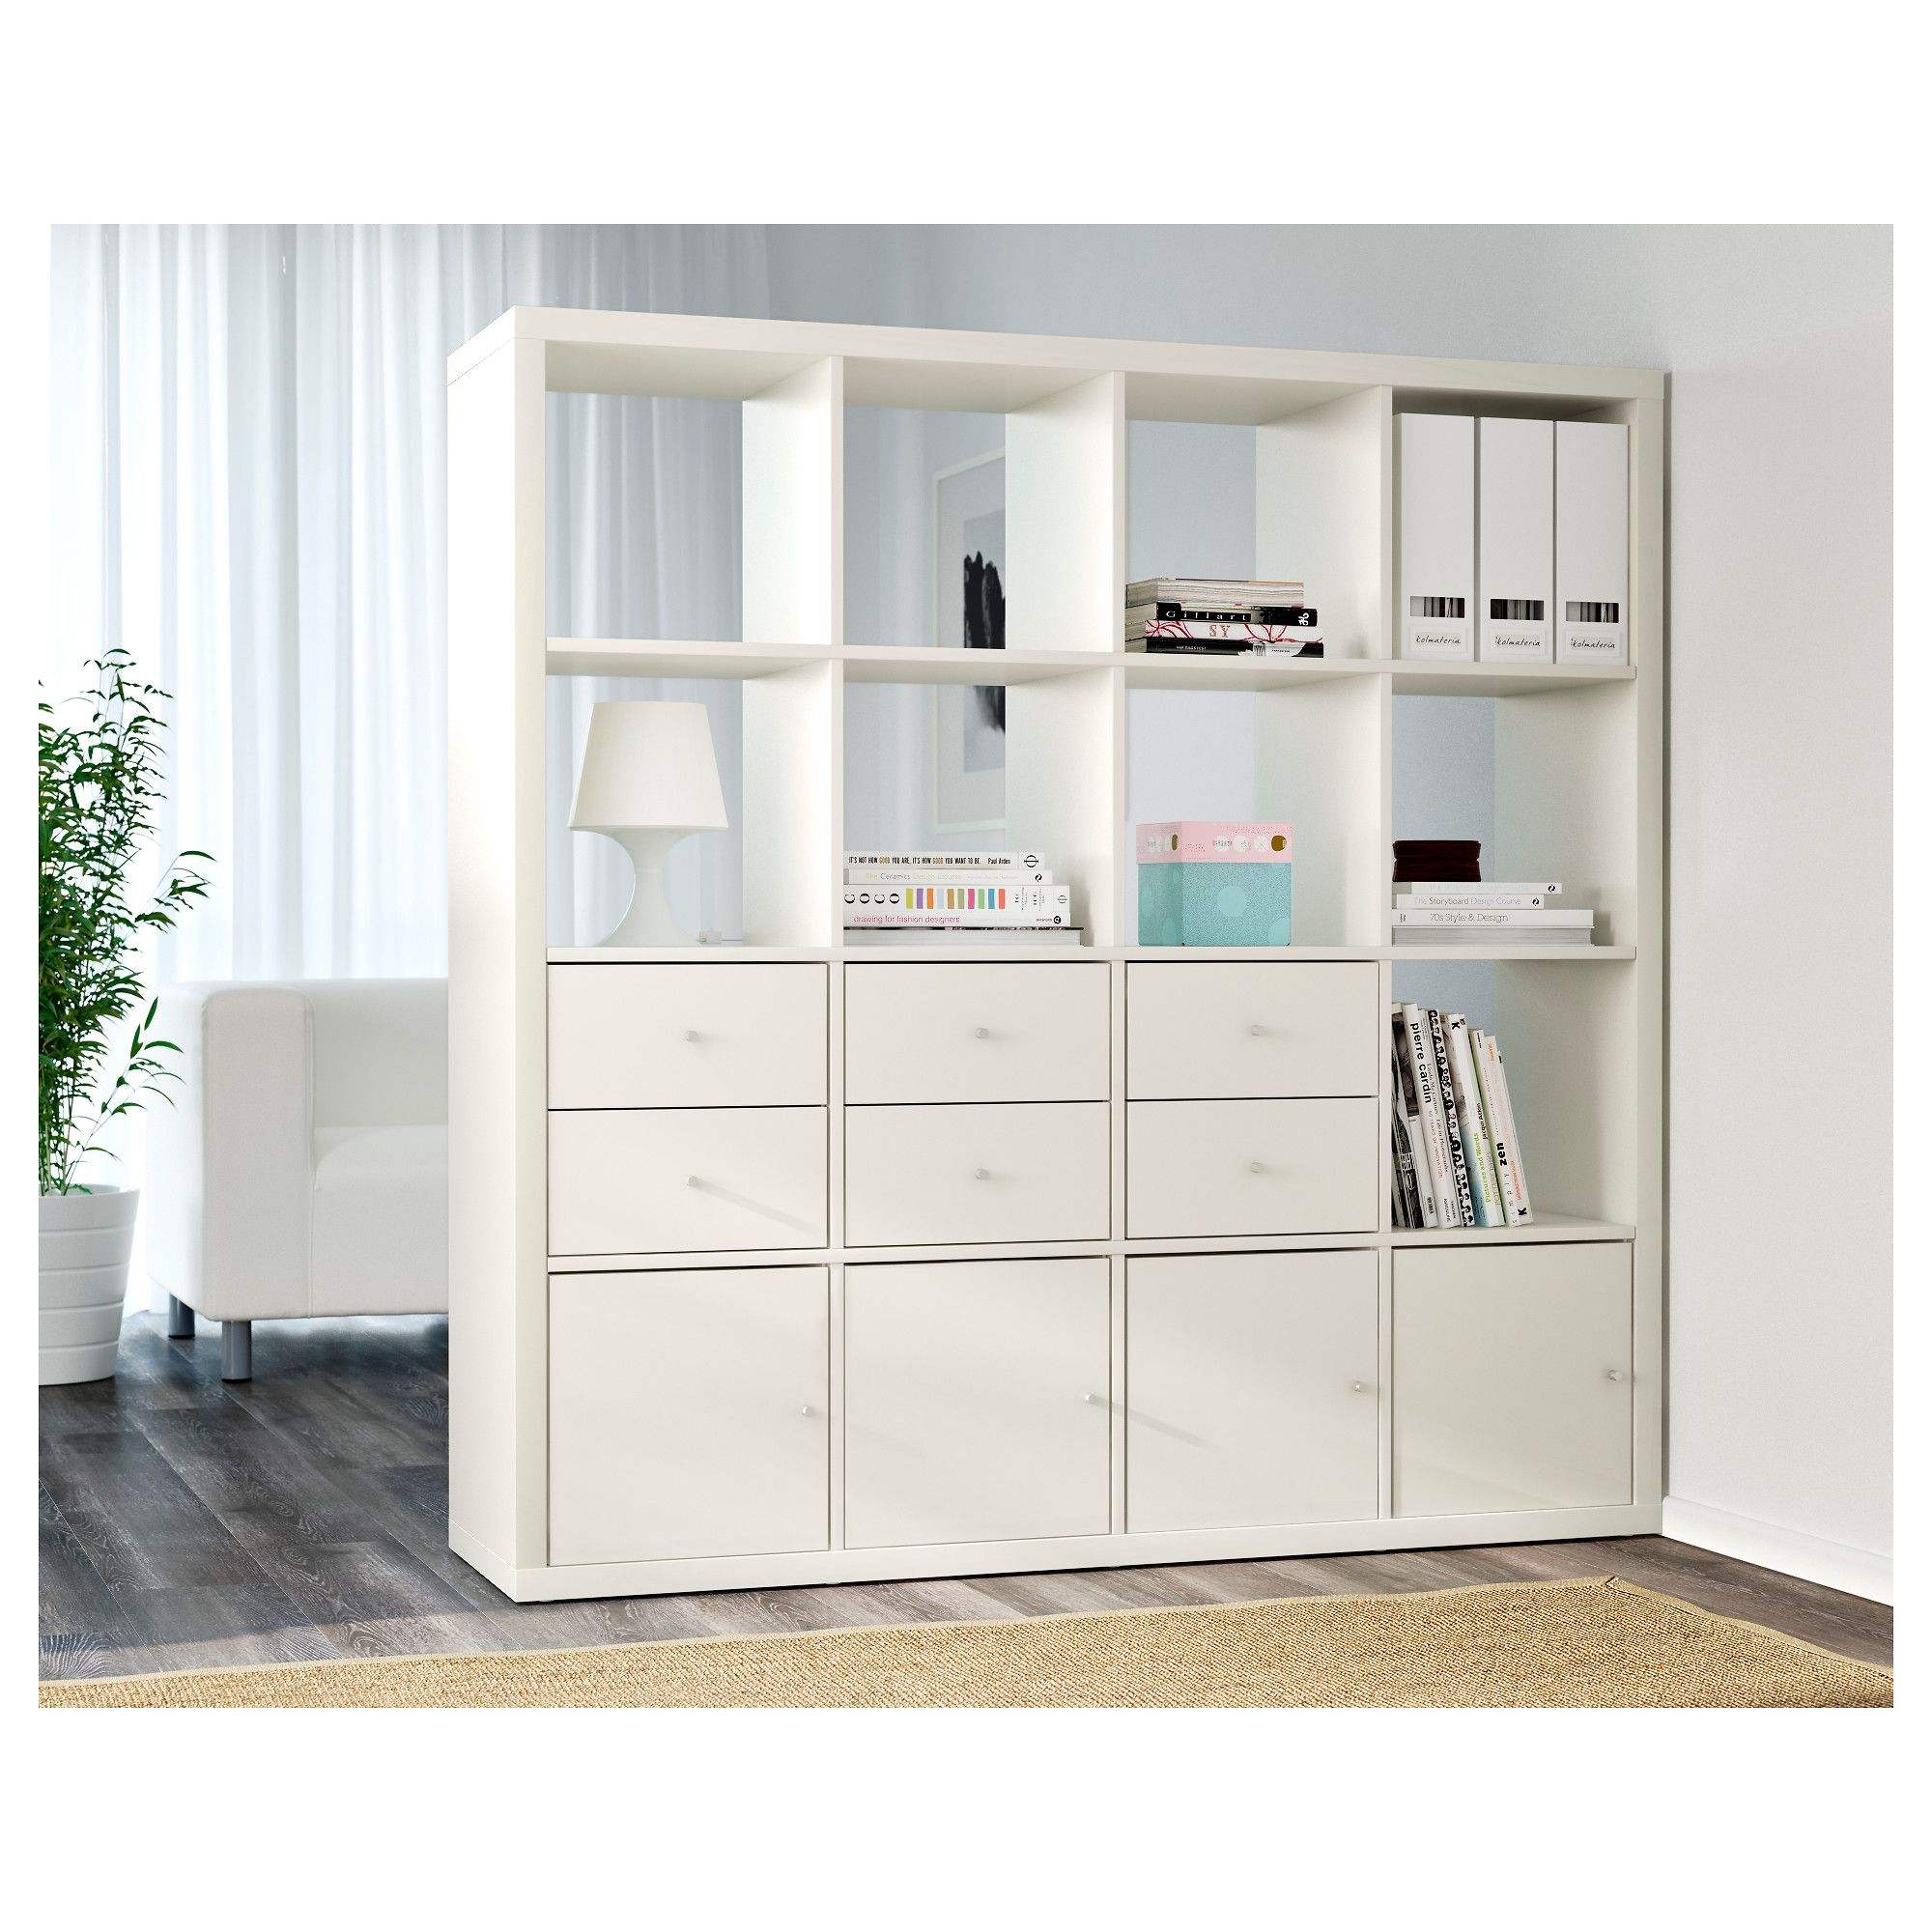 KALLAX Shelf Unit   White   IKEA Storage Shelf With Bins, Toy Storage Cubes,